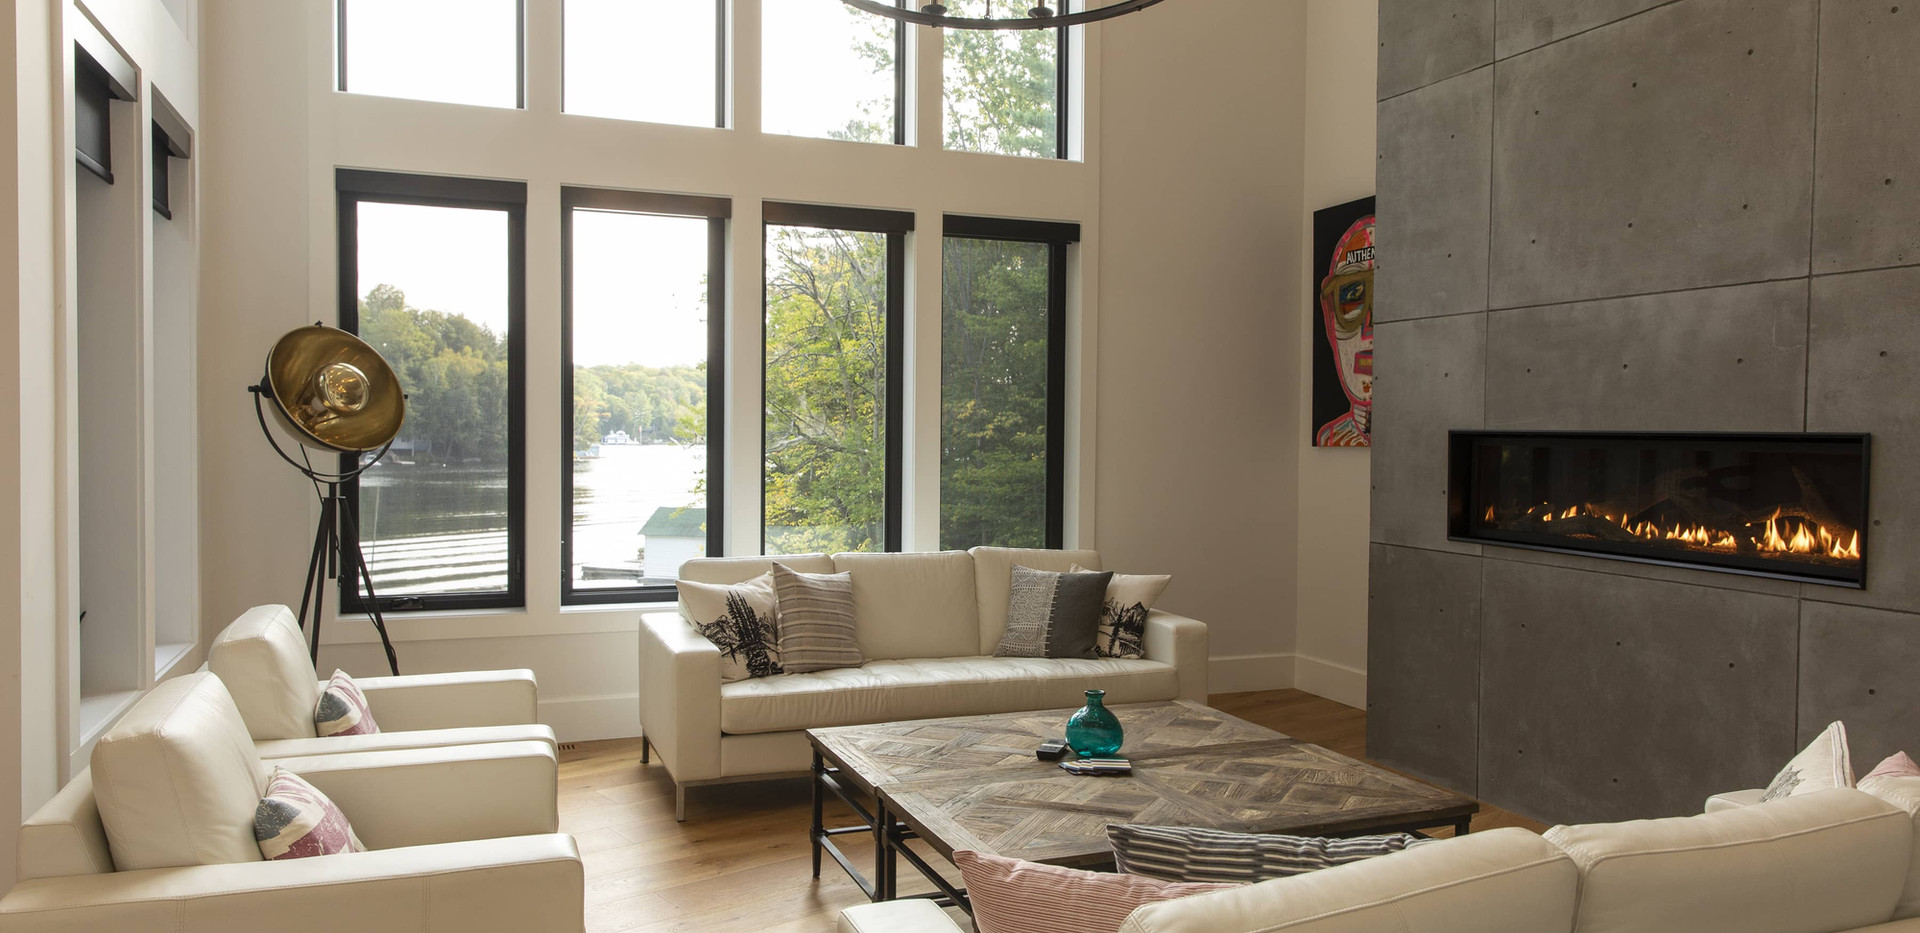 Floor to Cieling Windows and Fireplace